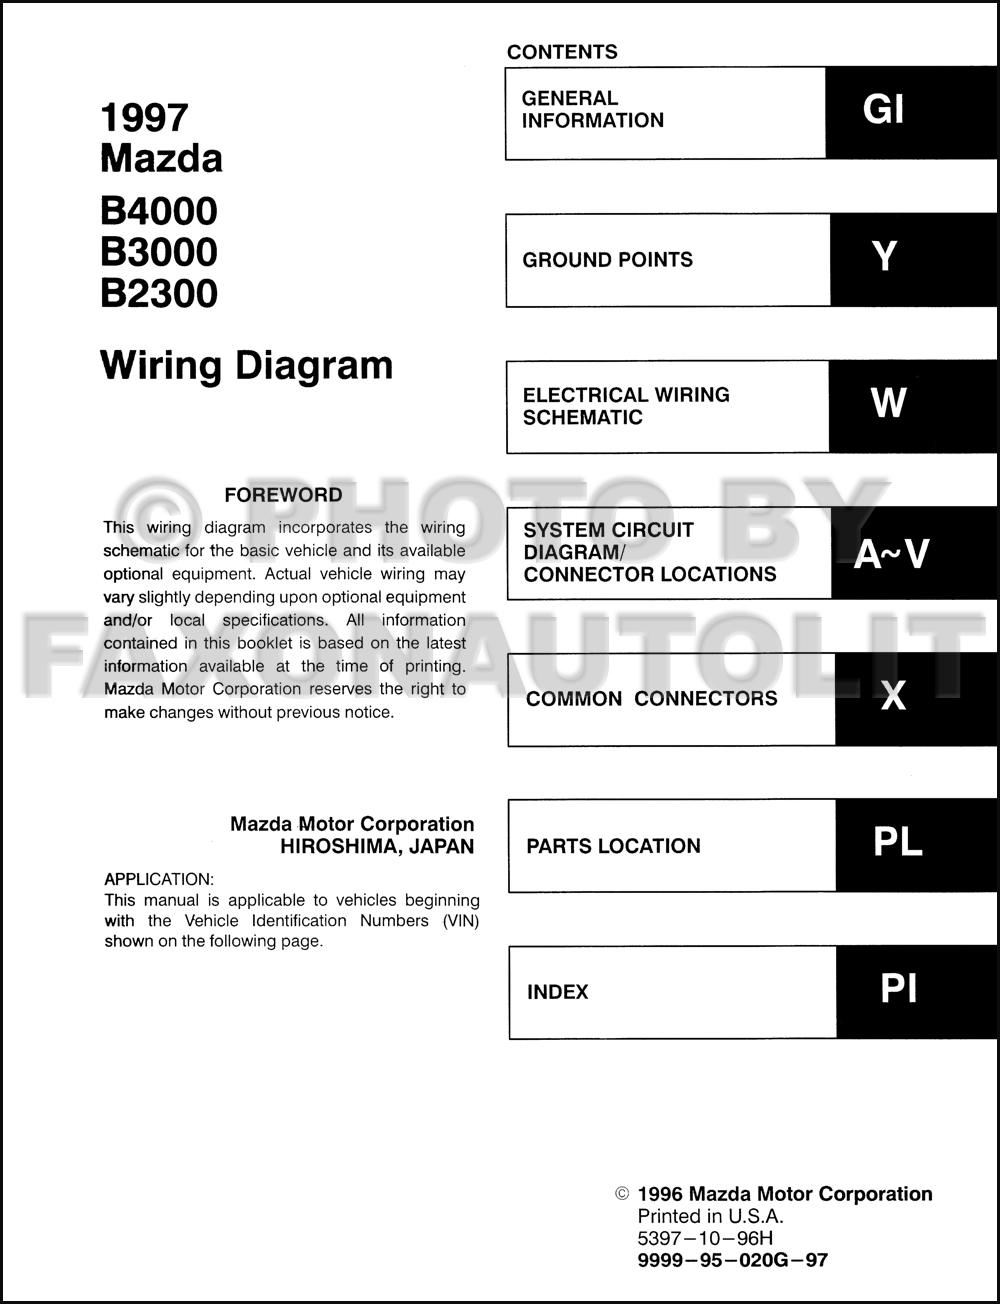 1997 Mazda B4000 B3000 B2300 Pickup Truck Wiring Diagram Manual Original.  click on thumbnail to zoom